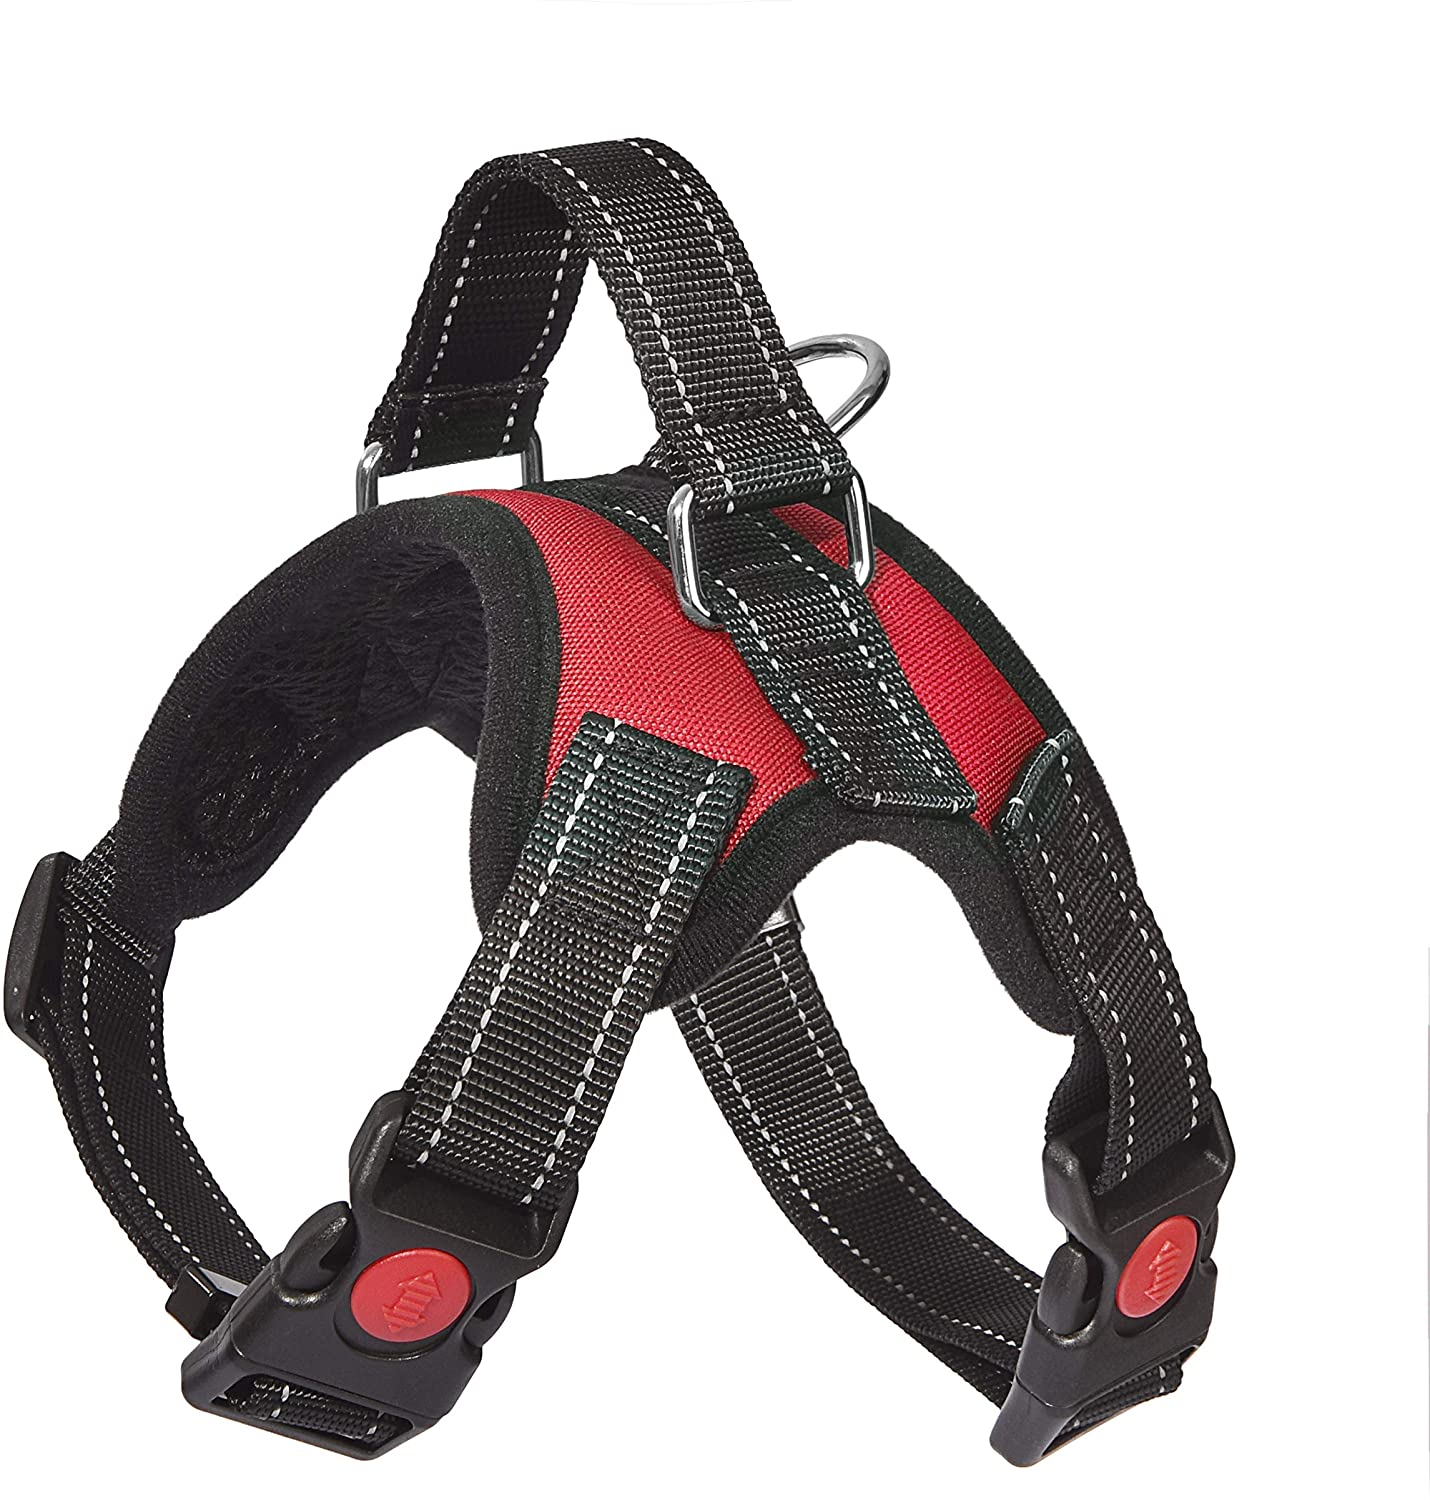 Dog Harness, Breathable Adjustable Dog Vest Pet Harness for Small Medium Large Dogs with Sturdy Leash